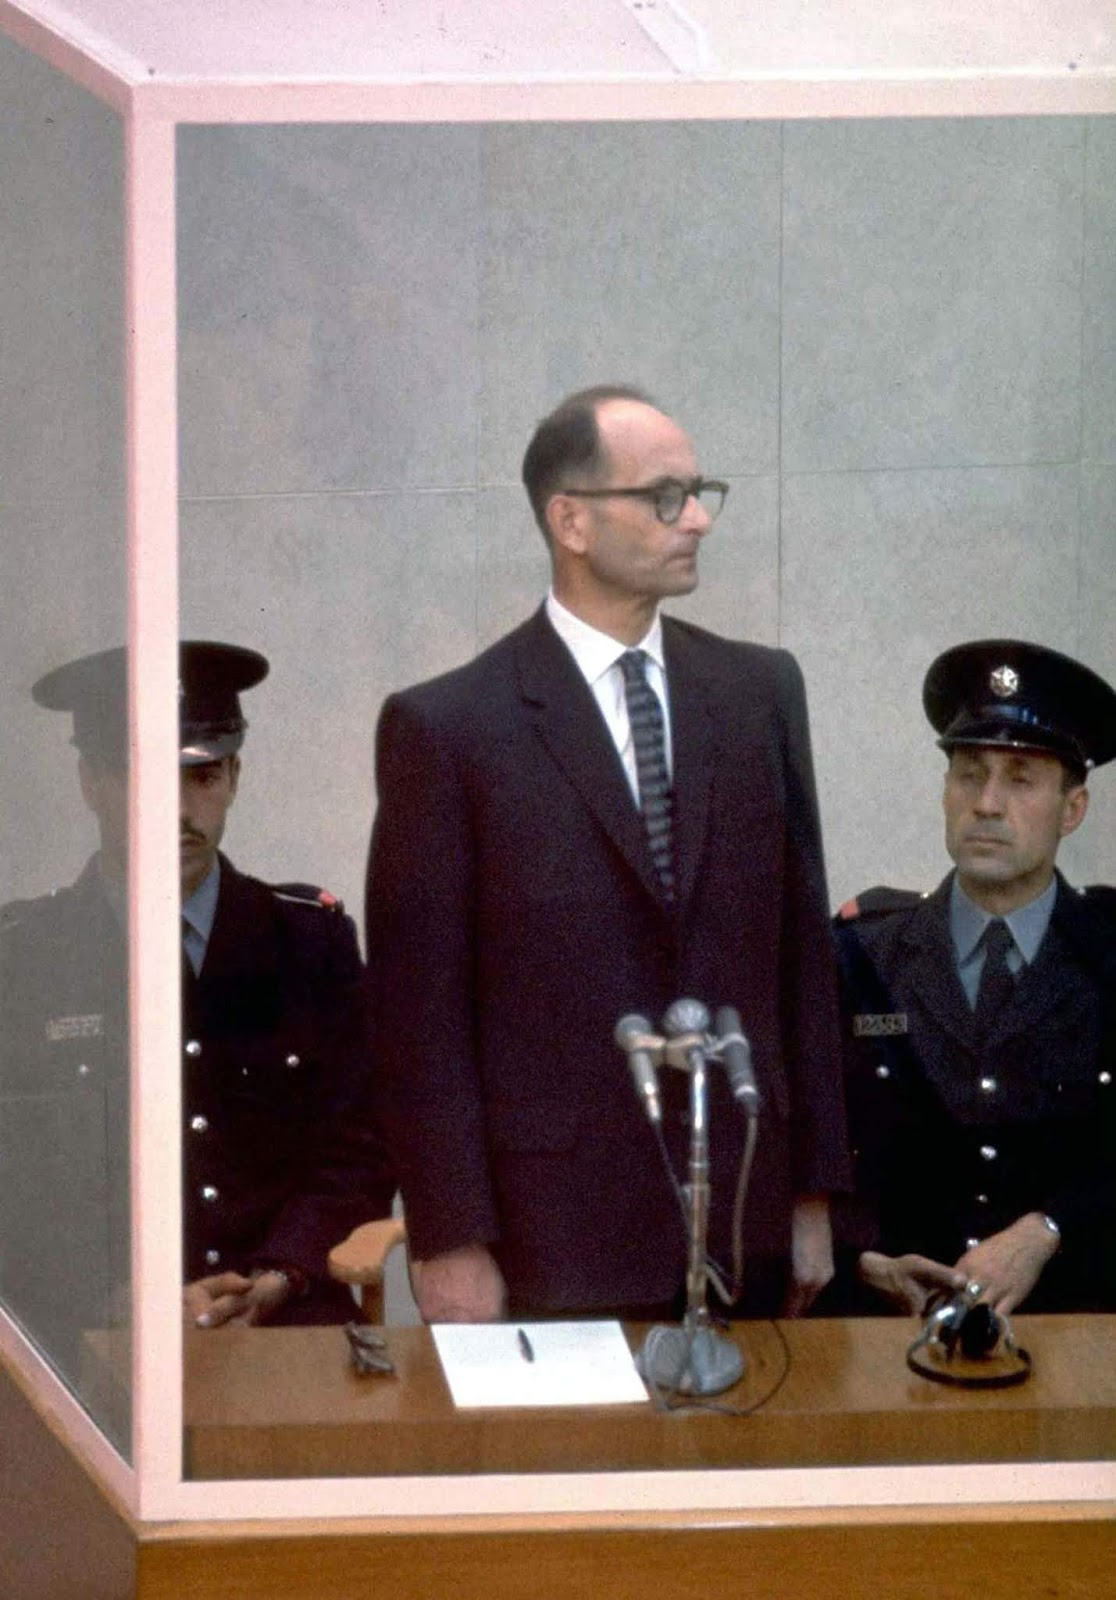 Nazi war criminal Adolf Eichmann standing in a protective glass booth during his trial in Israel in 1961. Eichmann was convicted for his role in organizing and carrying out the Holocaust and ultimately executed.